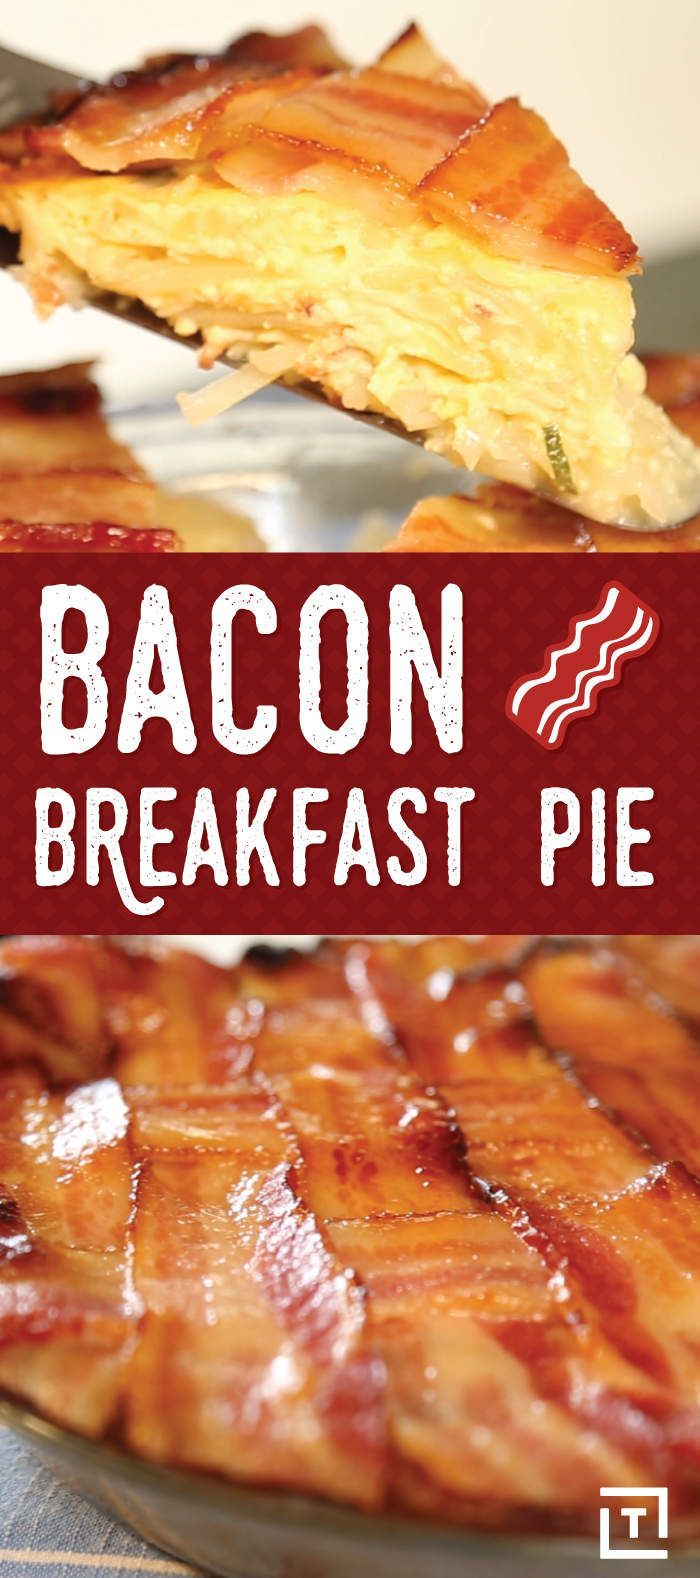 Breakfast Pie Is the Best Way to Start the Day Mix up your breakfast routine with this Bacon Breakfast Pie.Mix up your breakfast routine with this Bacon Breakfast Pie.